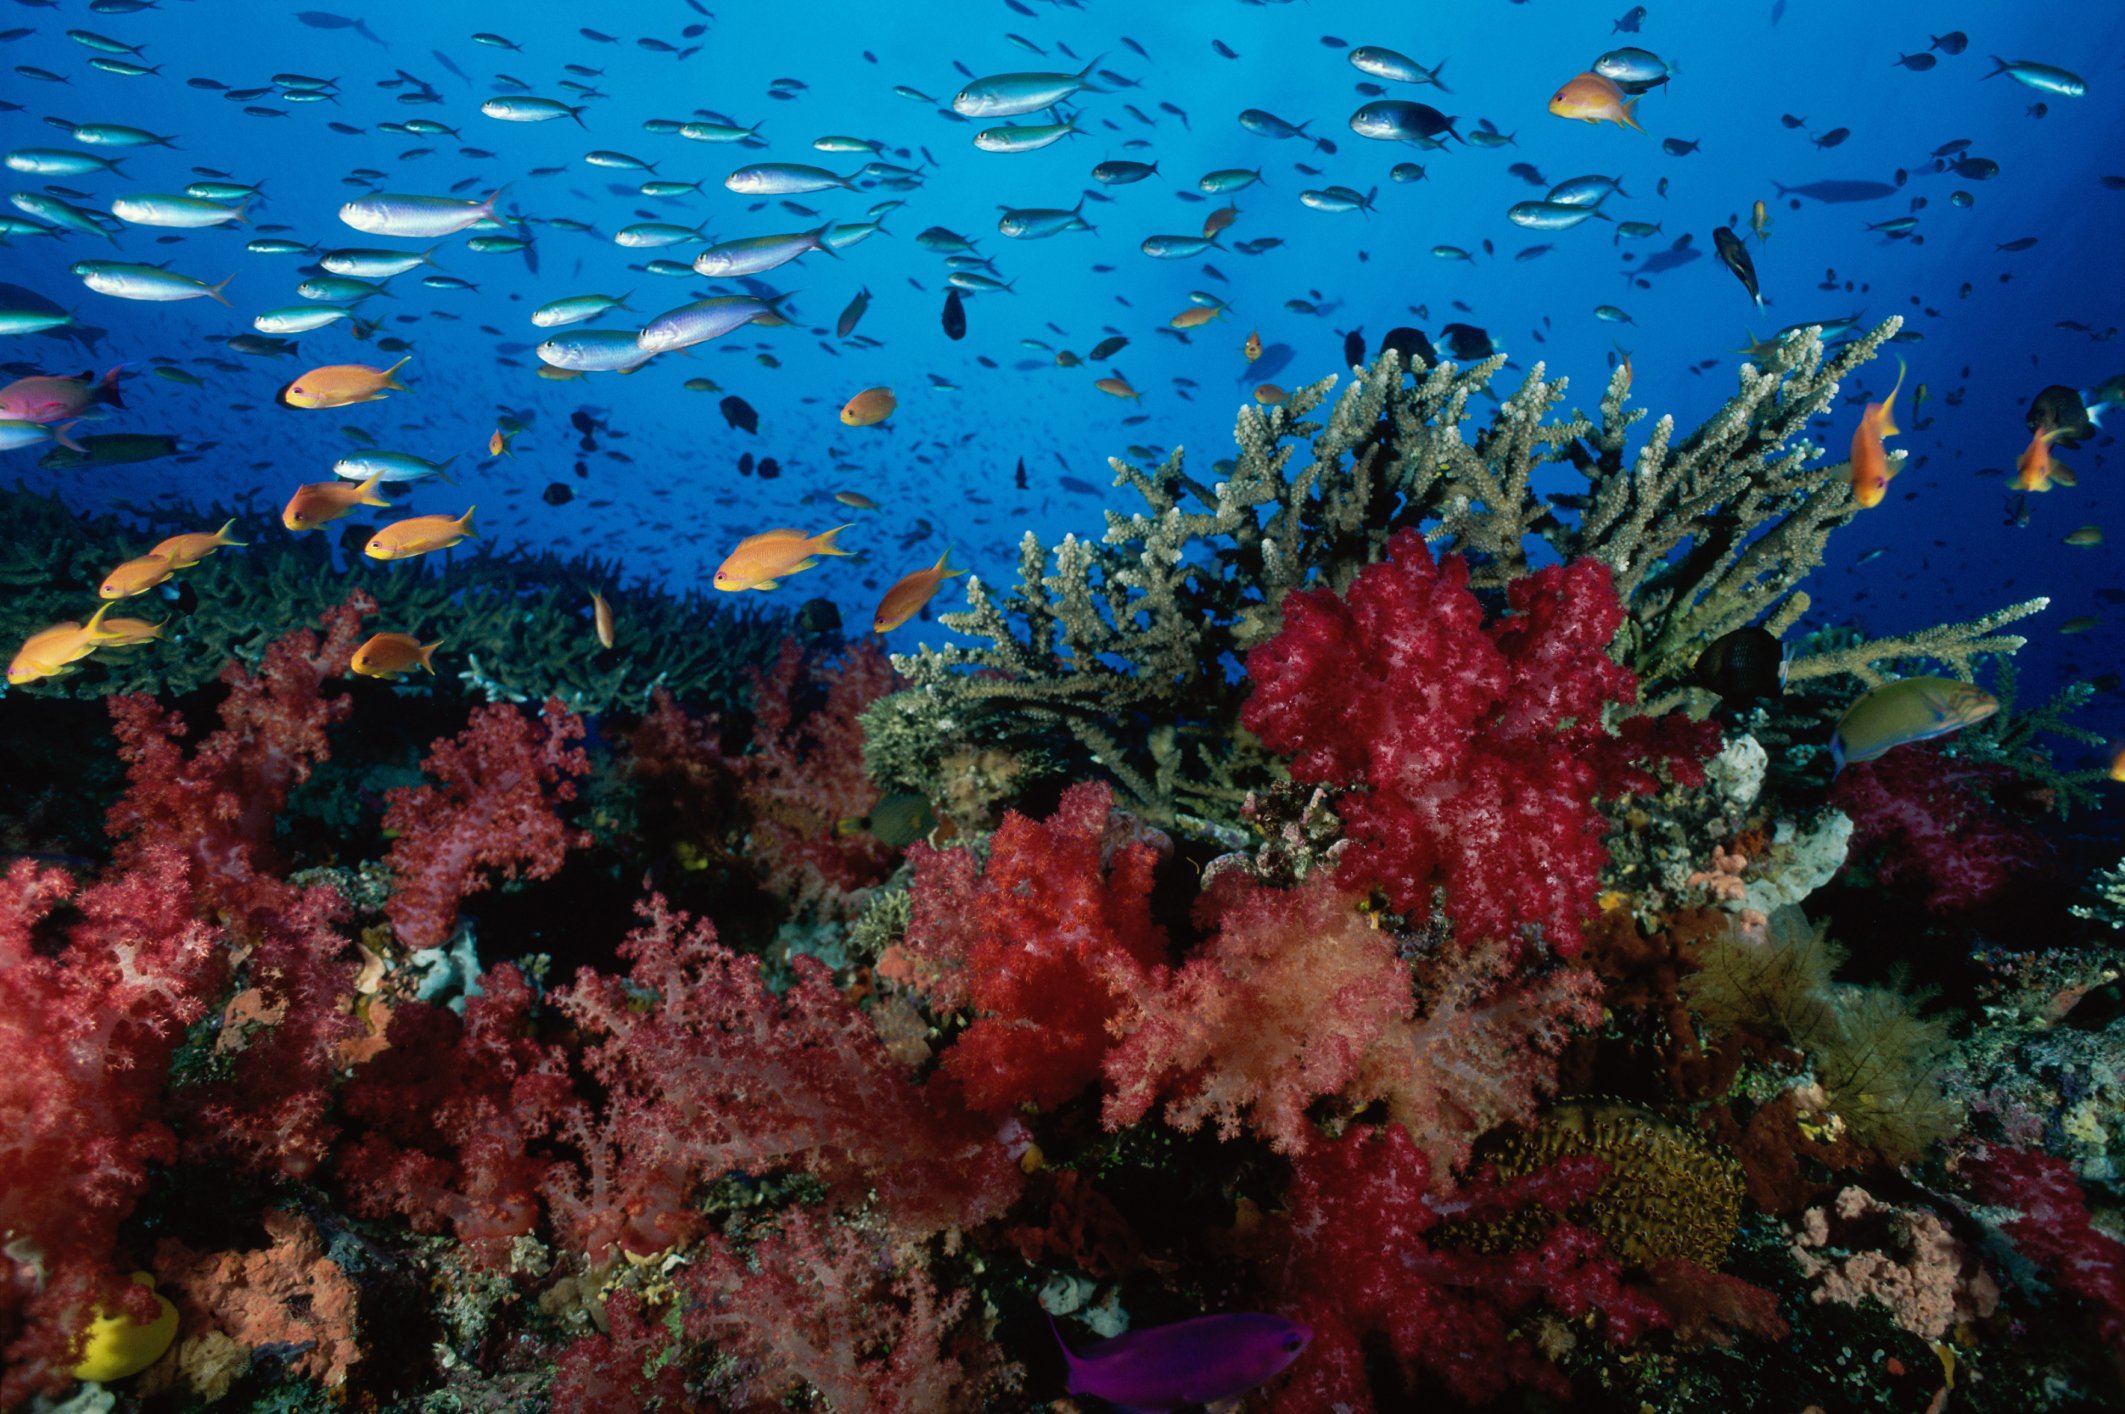 Reef and school of fish in the sea